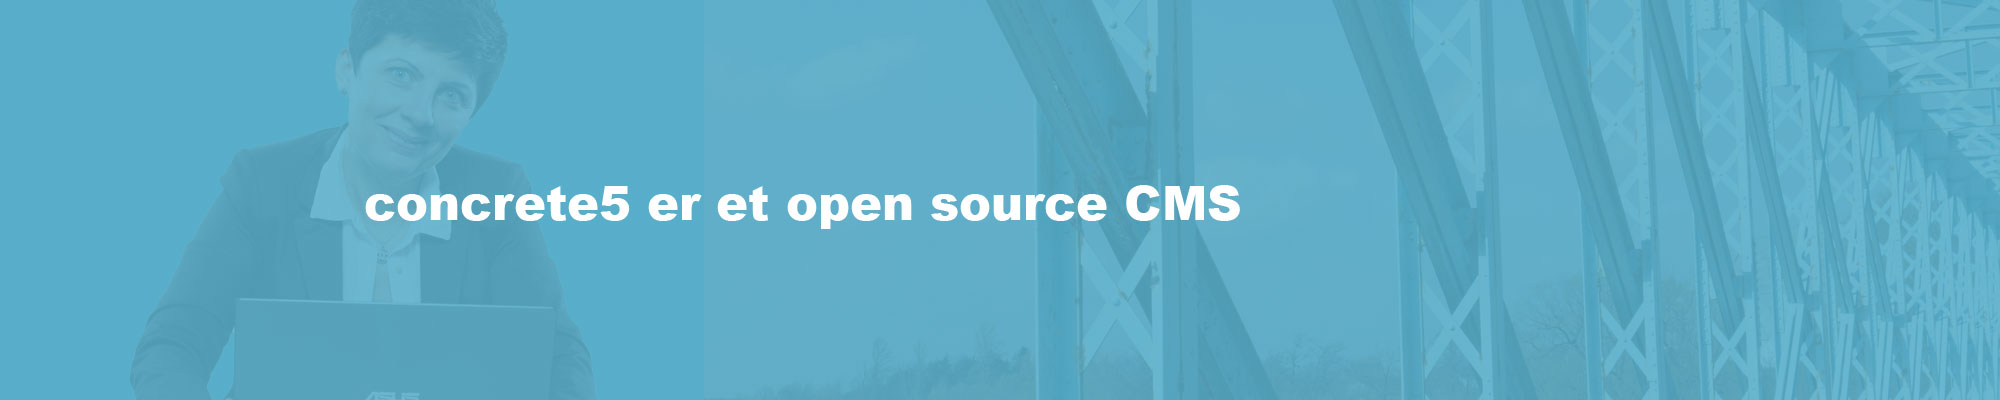 Concrete5 er et open source cms